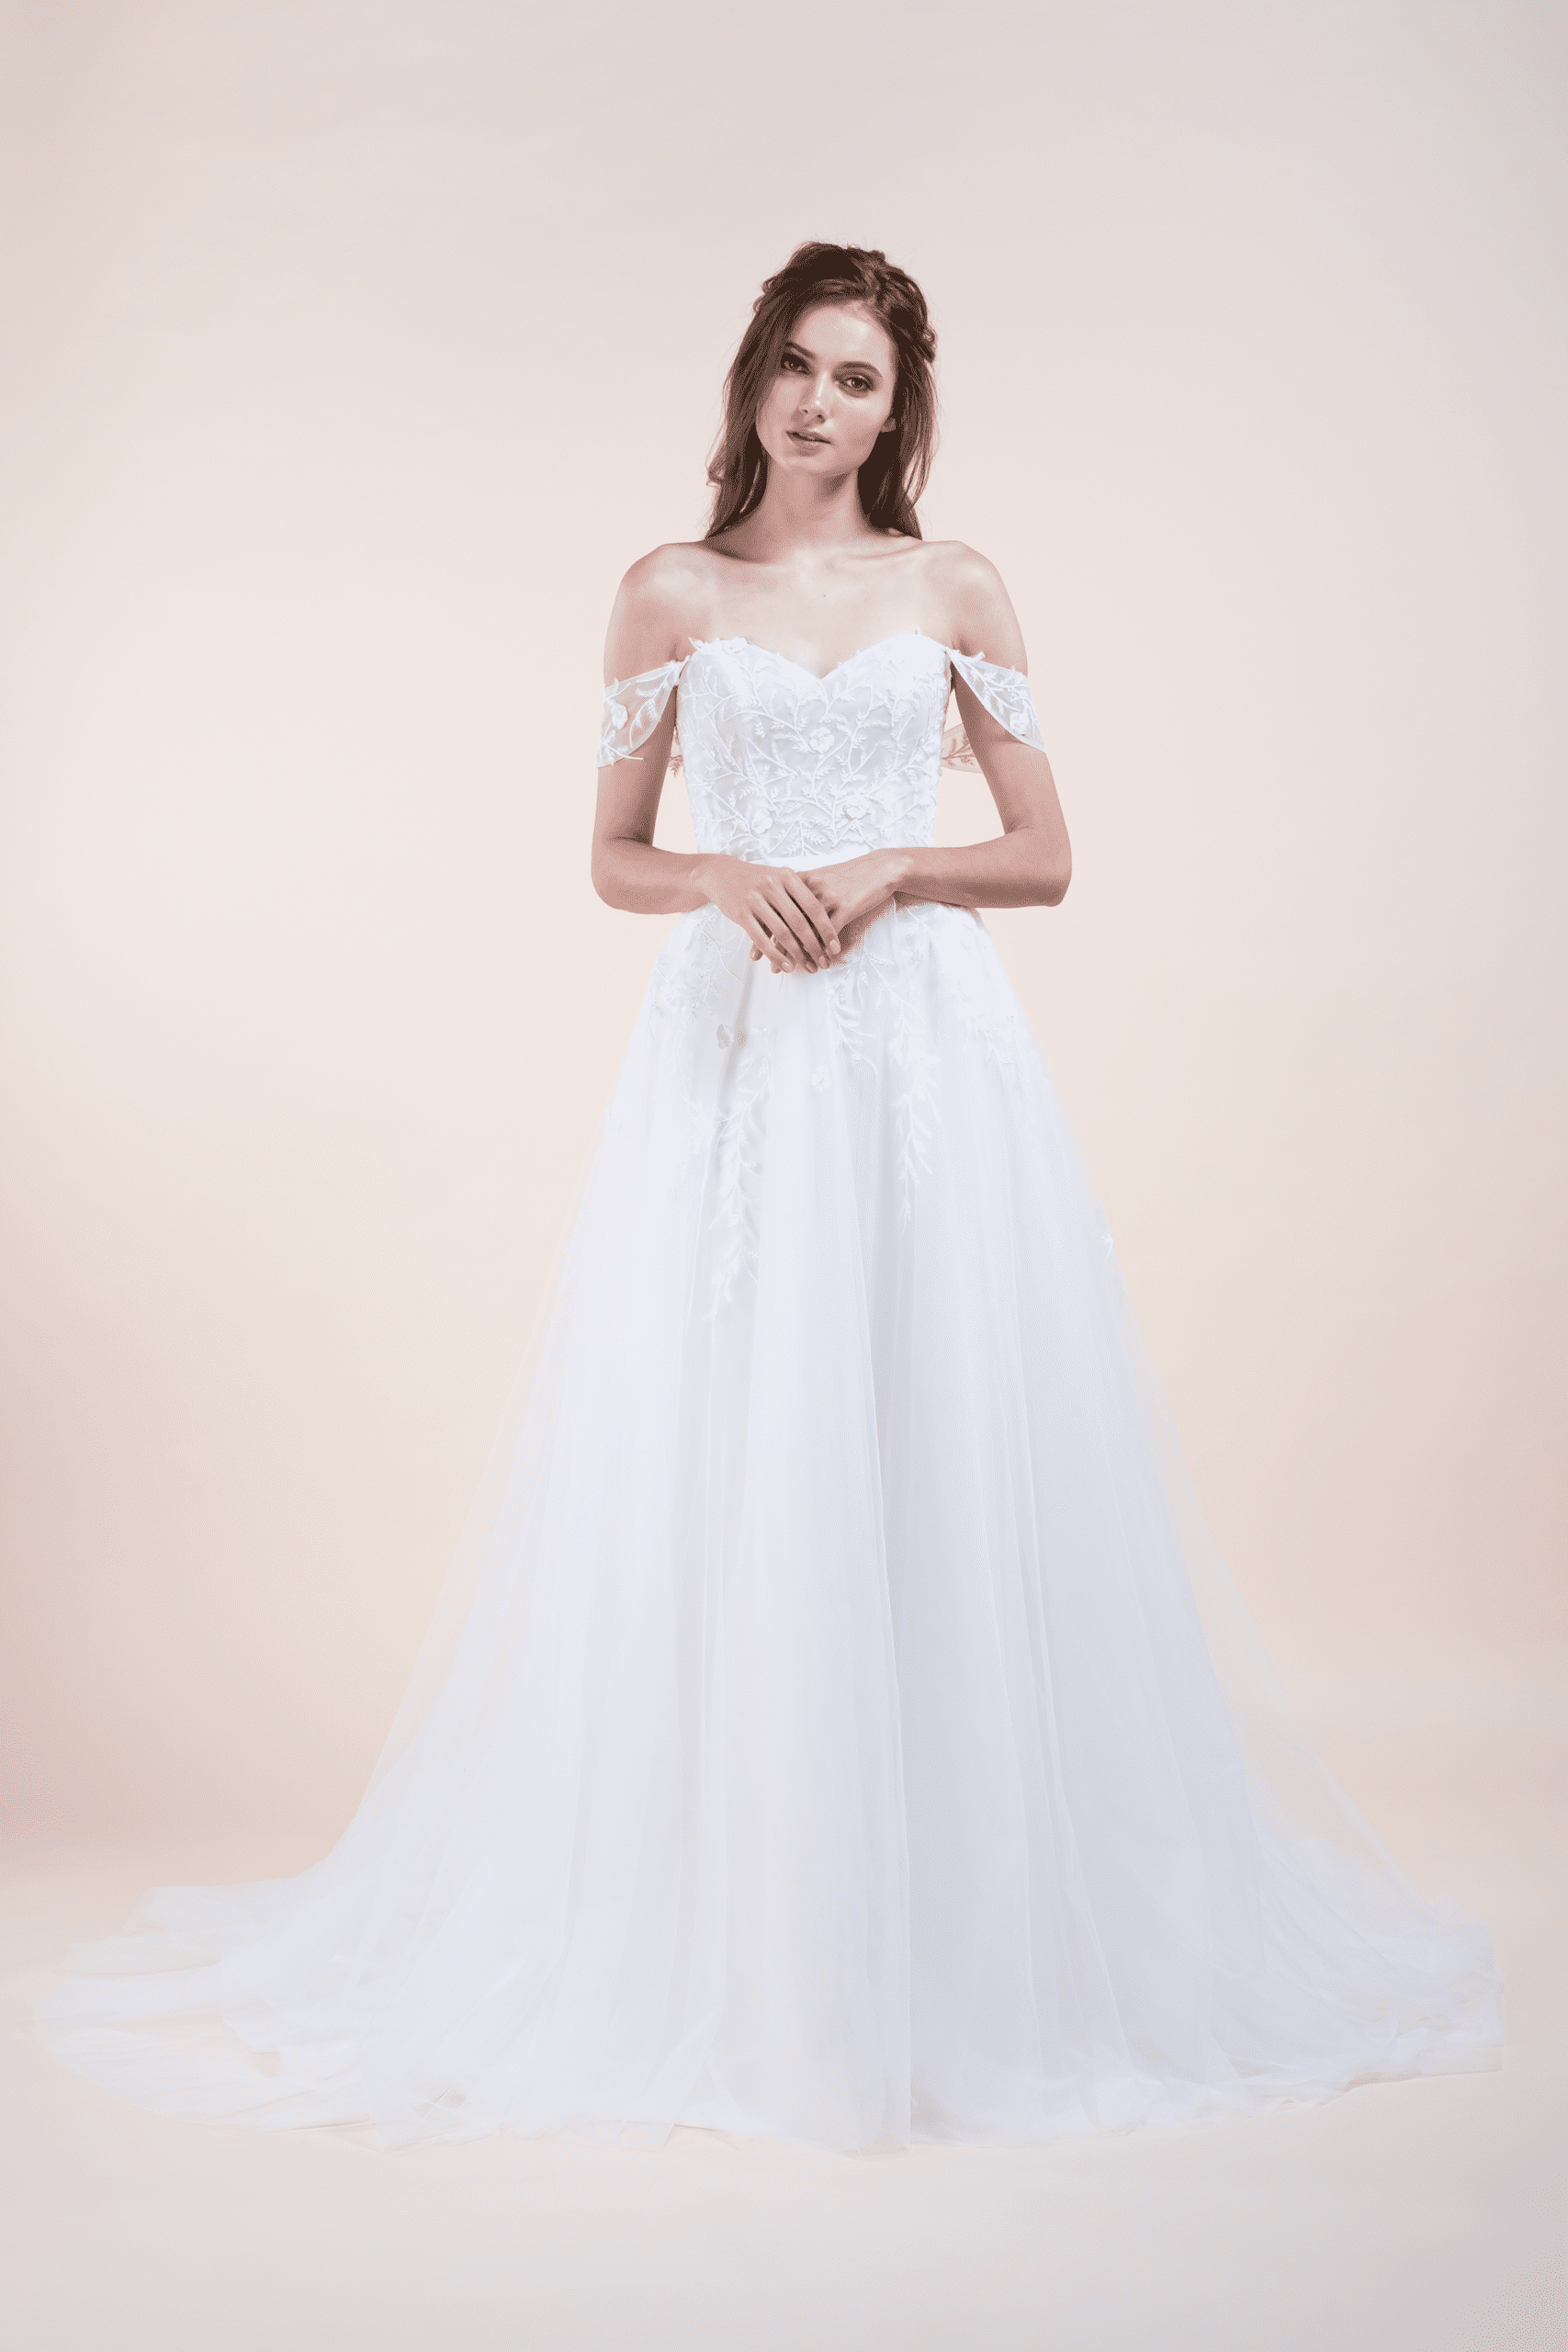 Athena-affordable-Bridal-Gown-for-rent-in-Singapore